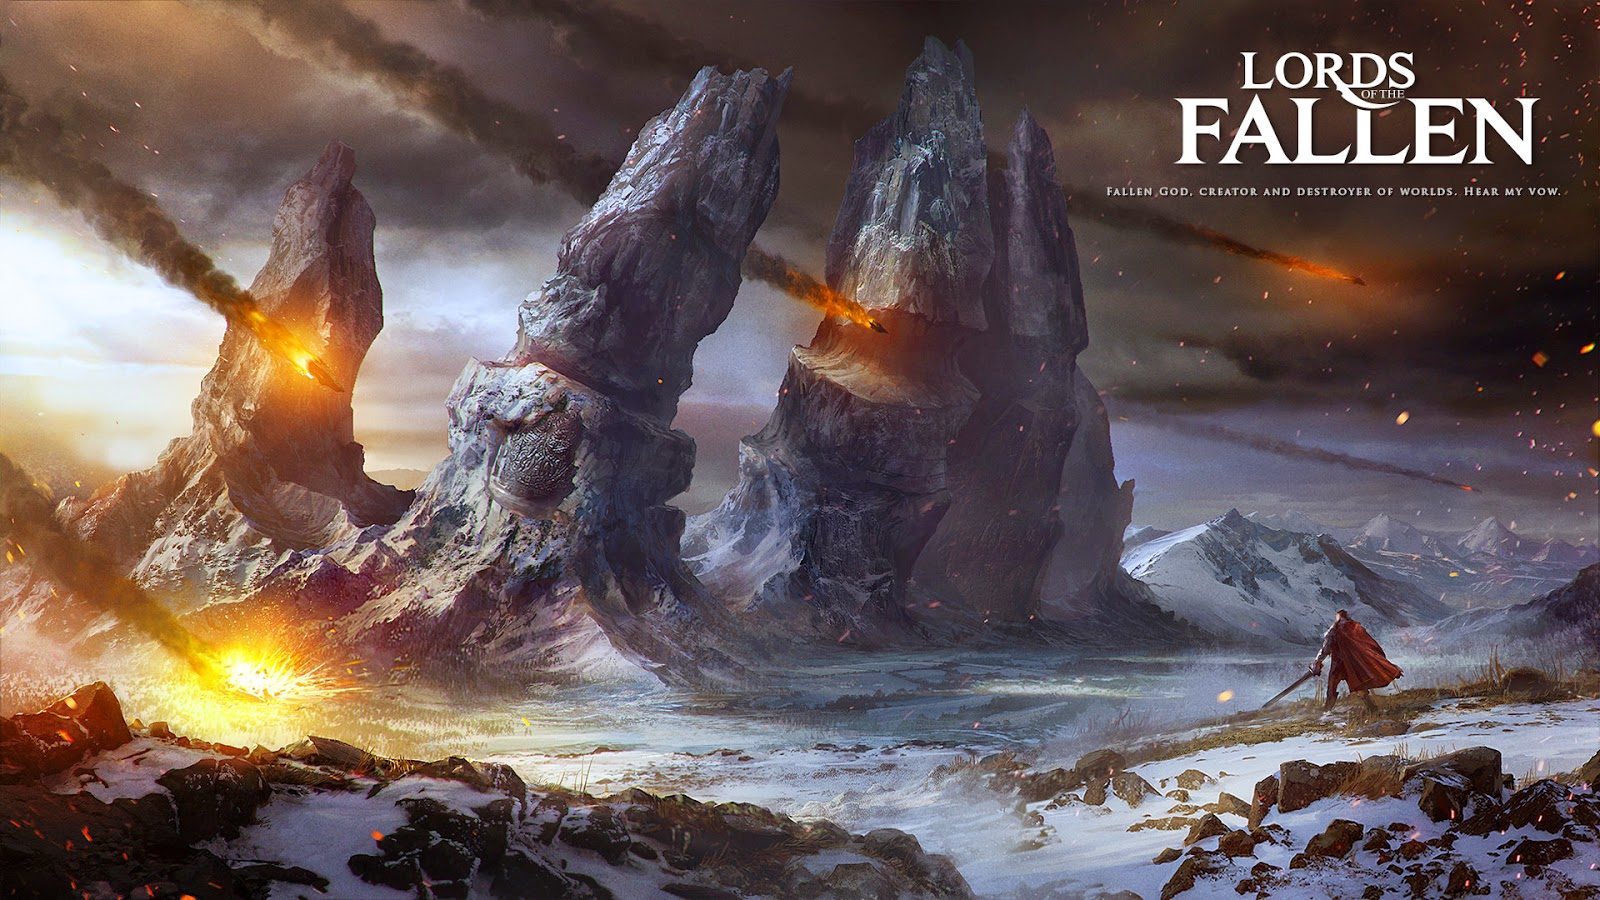 Programa 8x11 (12-12-2014) - Lords of the Fallen 2308910-01